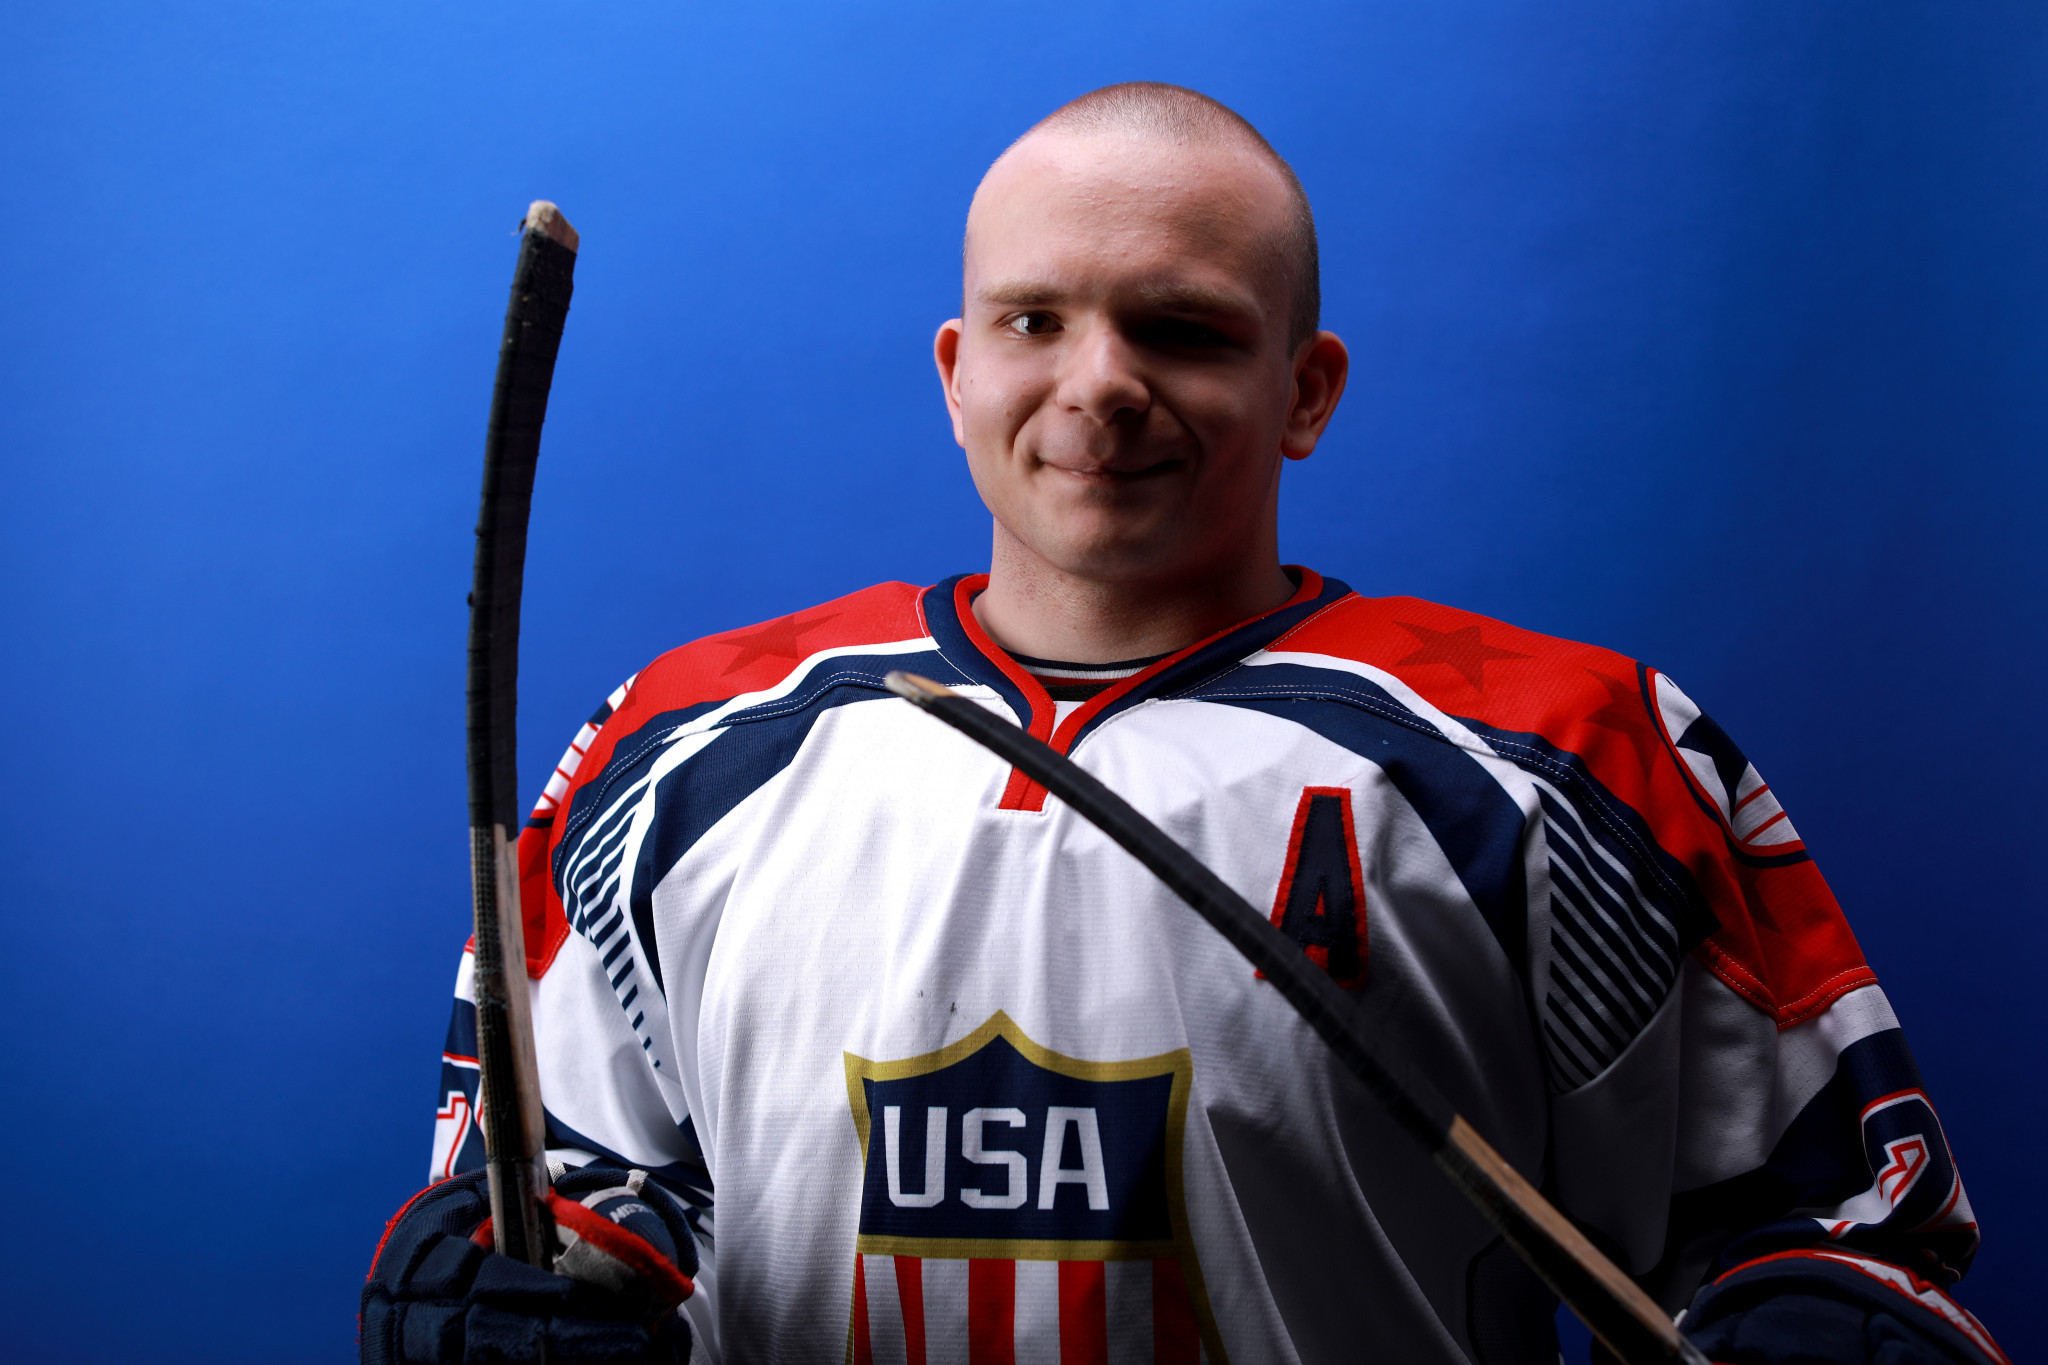 Pauls named US Para-ice hockey team captain for Pyeongchang 2018